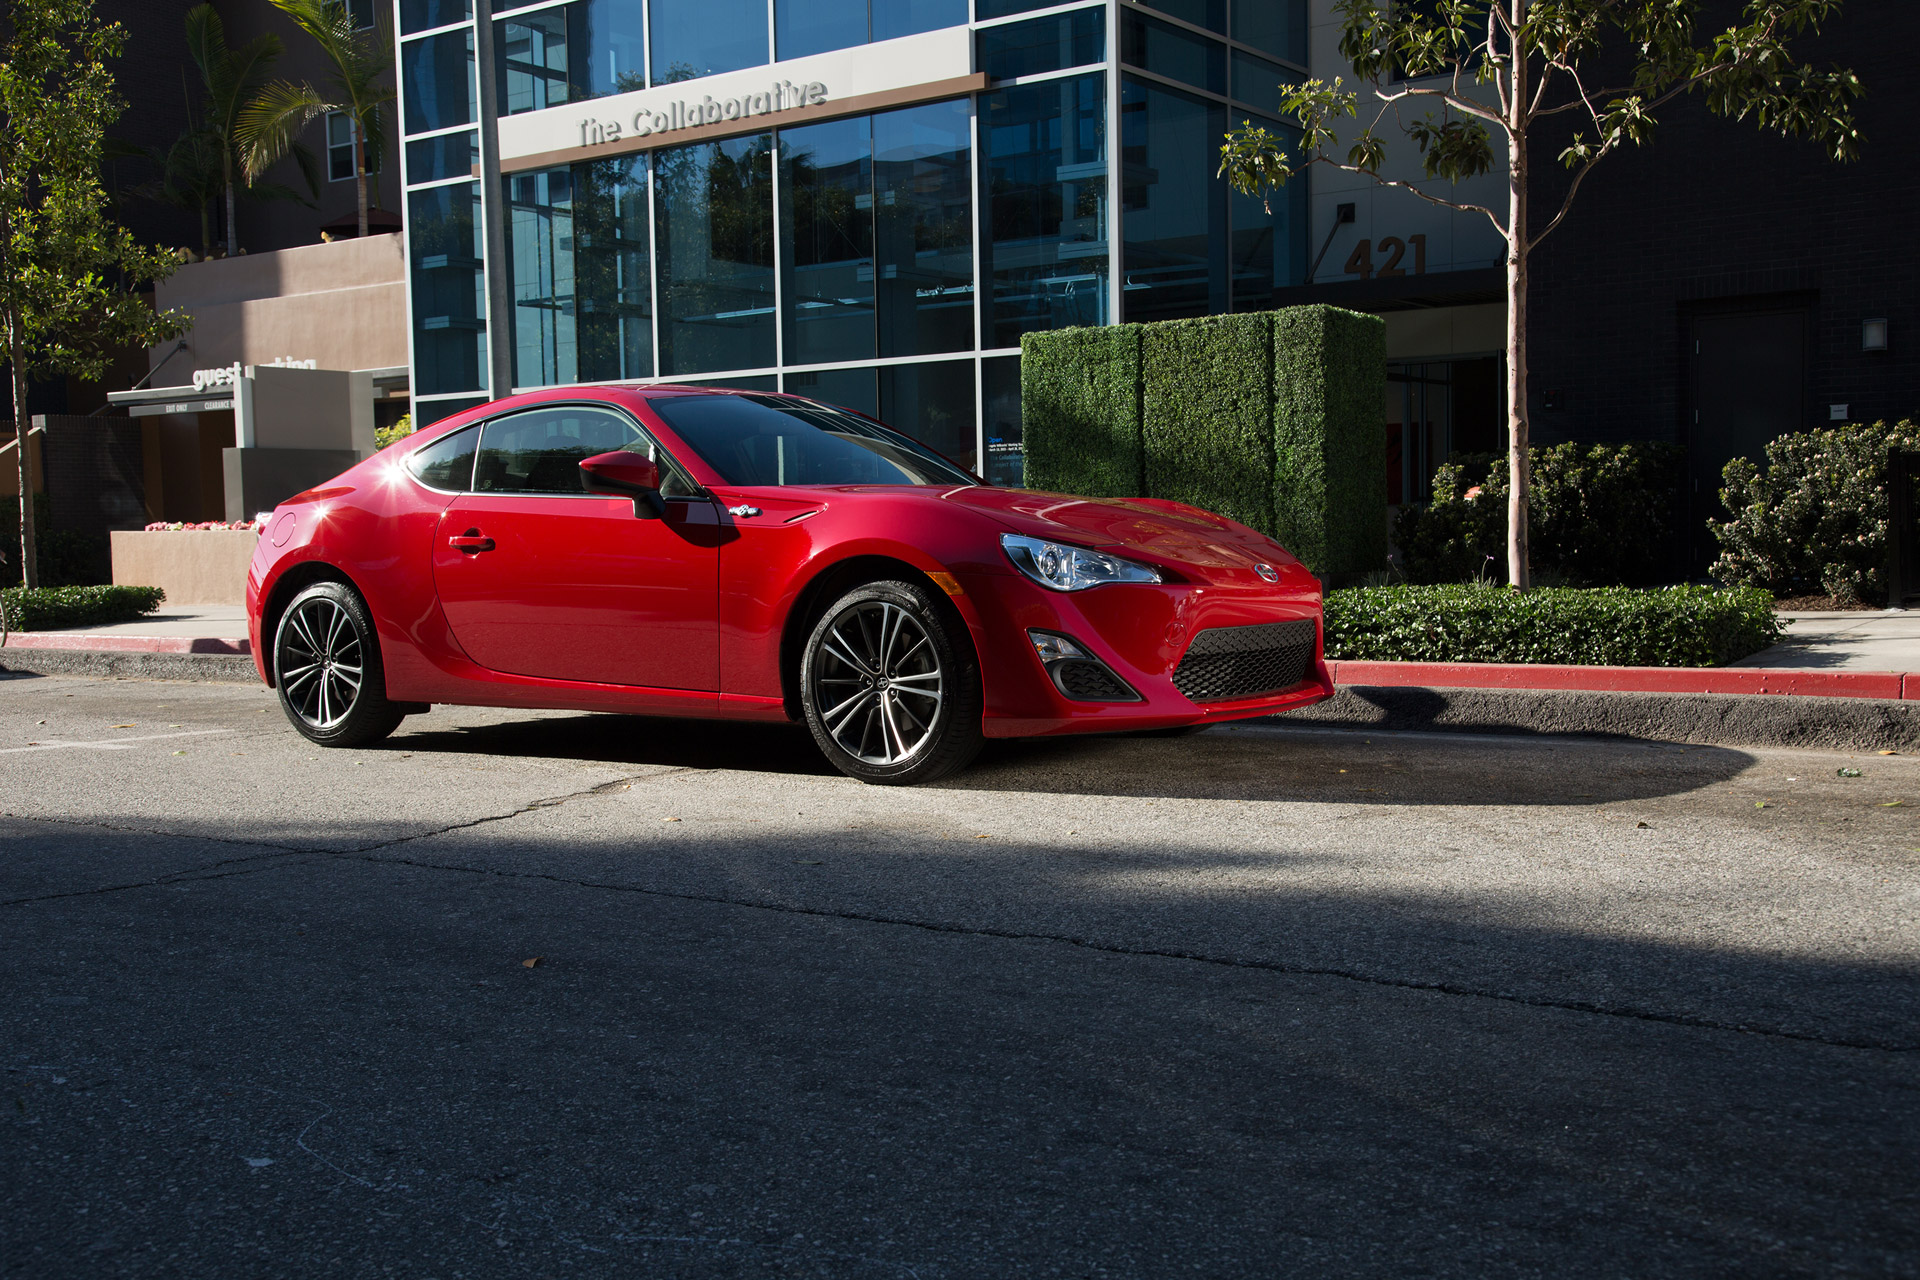 Porsche Of Wallingford >> 2016 Scion FR-S Review, Ratings, Specs, Prices, and Photos ...